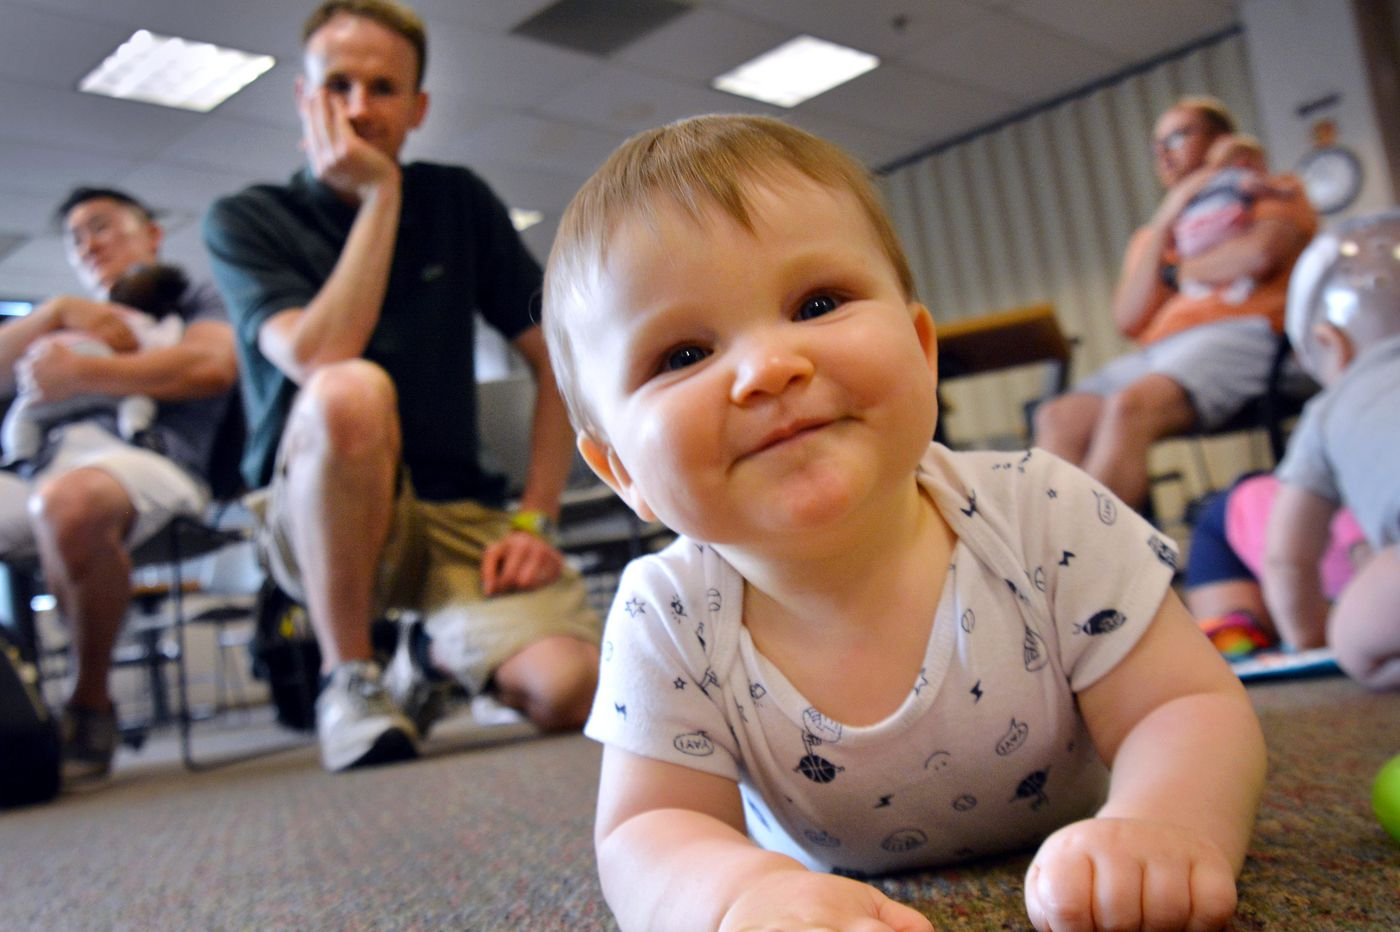 The secrets of sleep deprivation: DadLab offers new fathers wisdom in the company of men